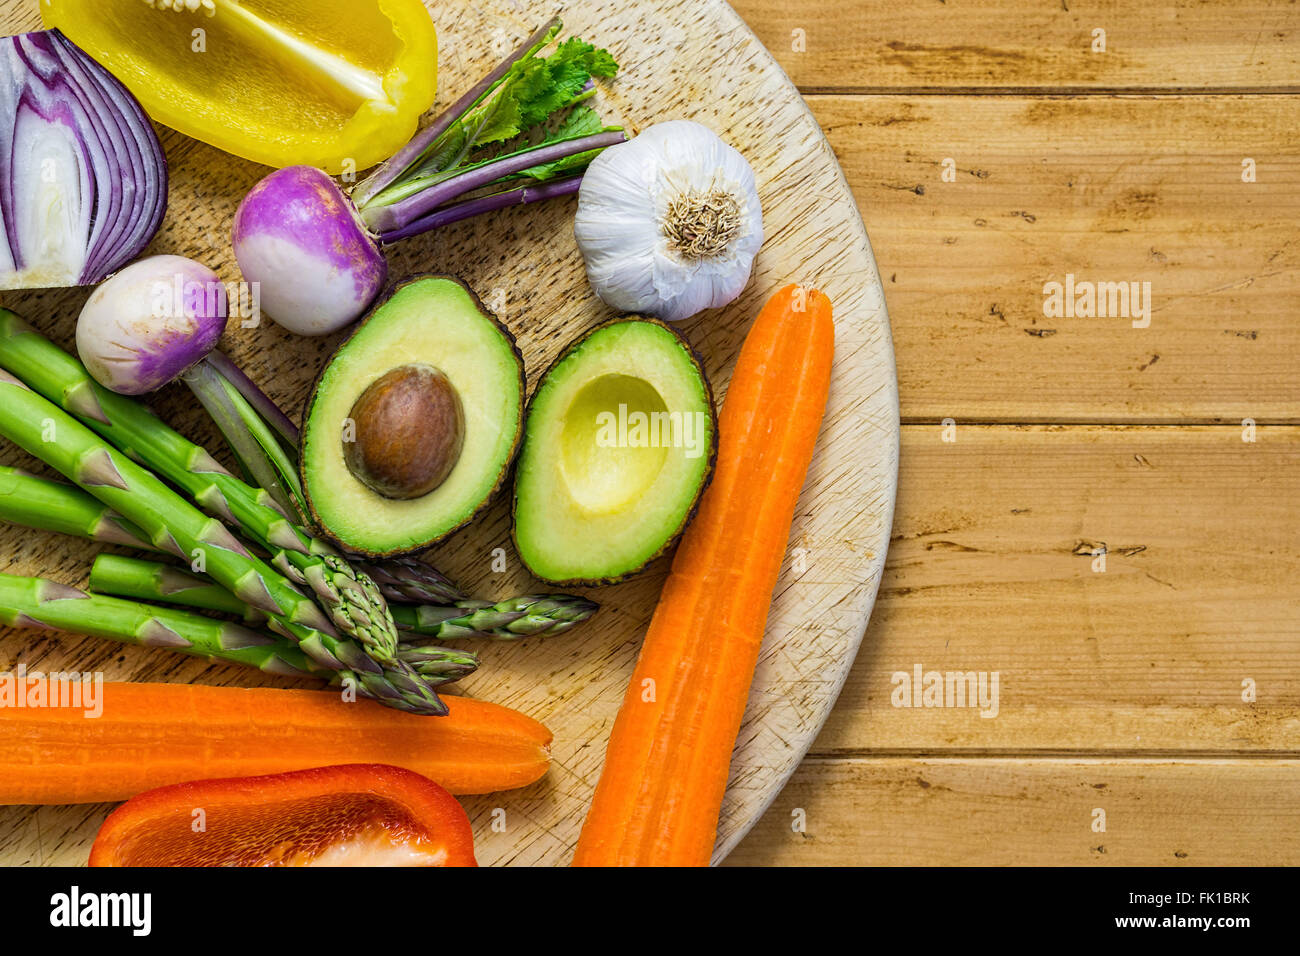 Fresh vegetables sliced in half on a wooden table, flatly, asparagus avocado, bell peppers, onion, space for text - Stock Image